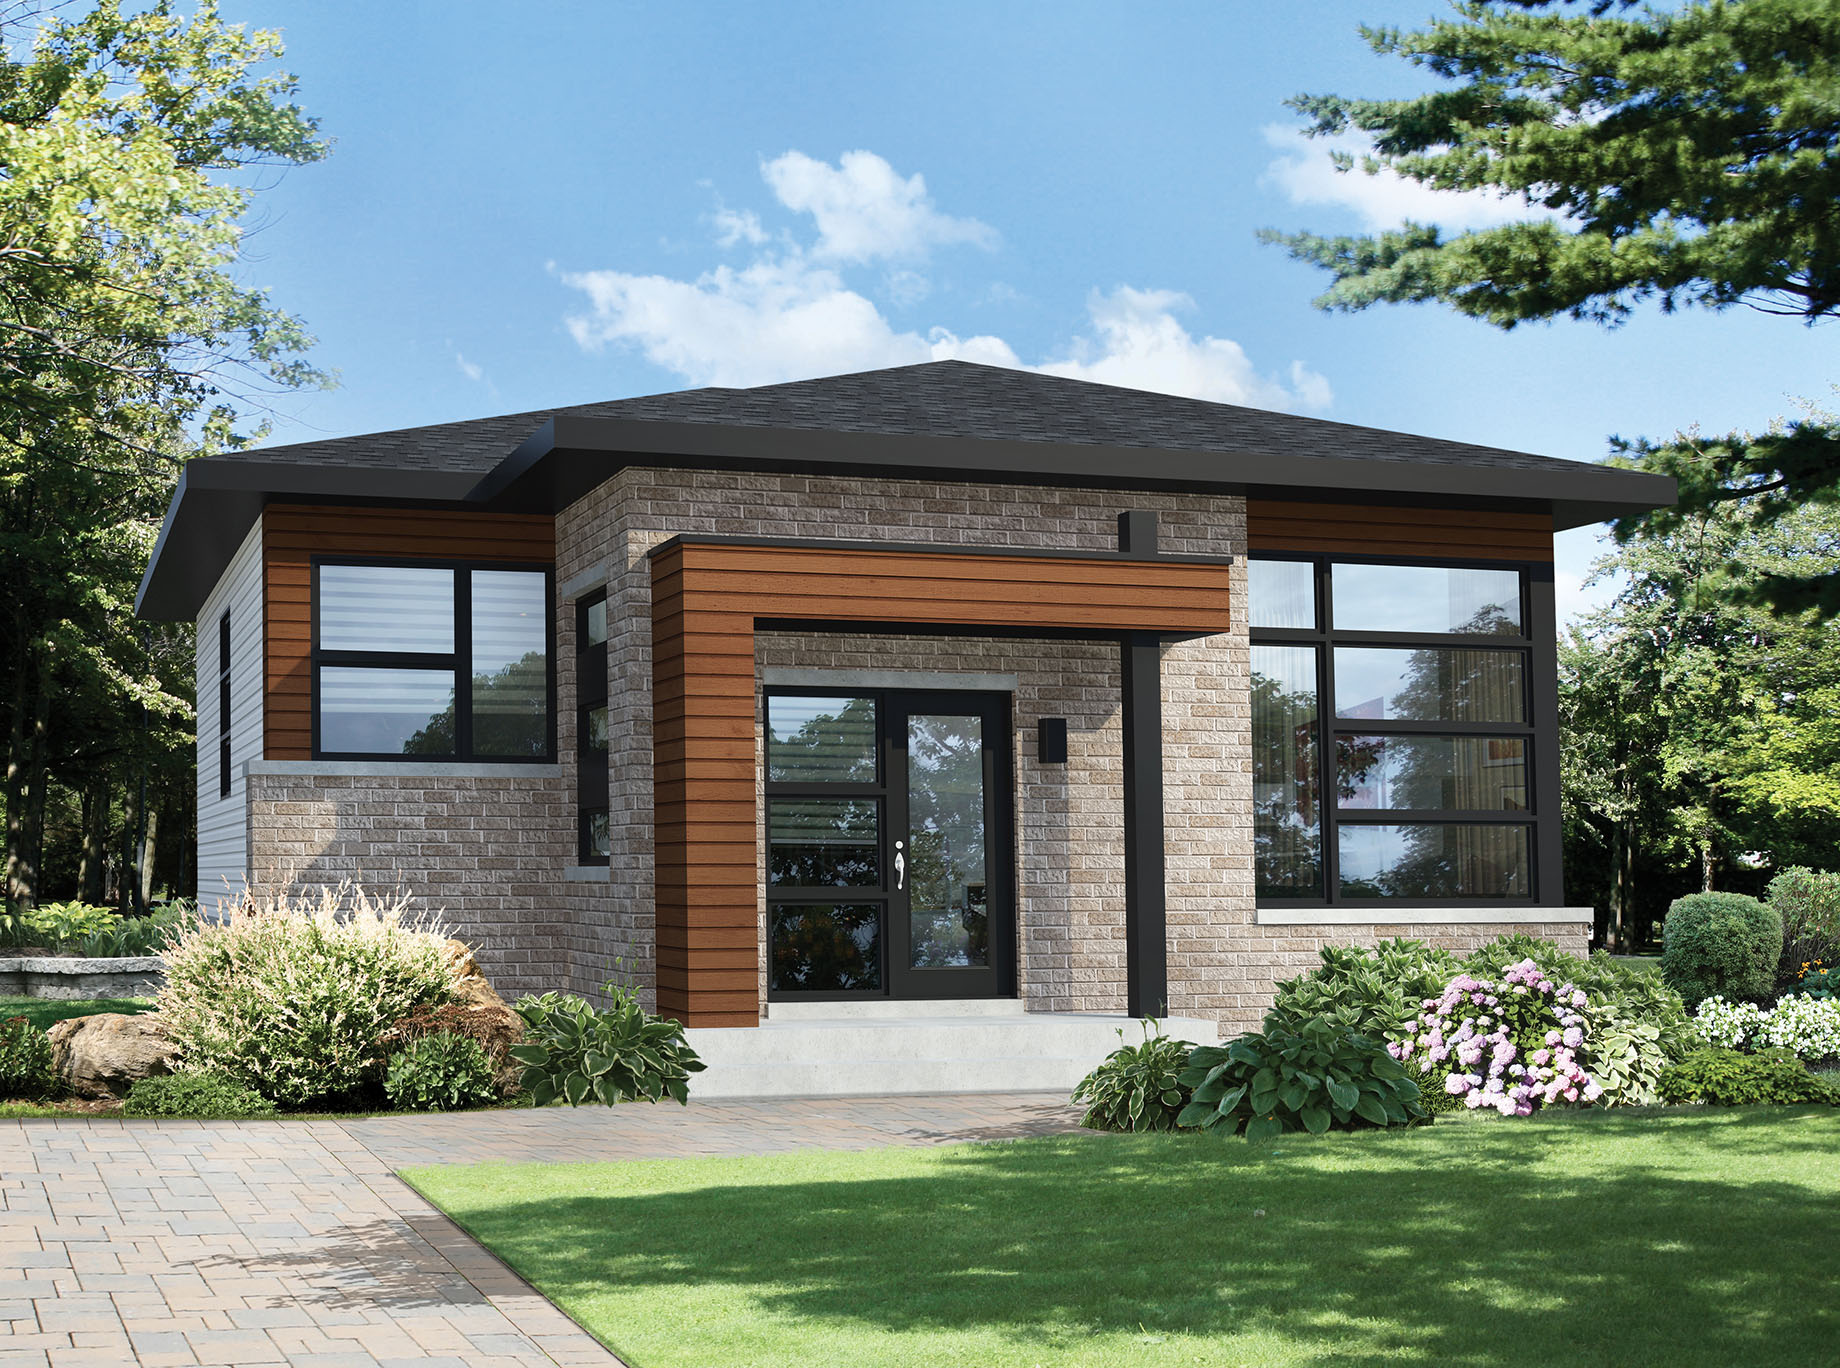 Two Bedroom Modern House Plan - 80792PM | Architectural ...